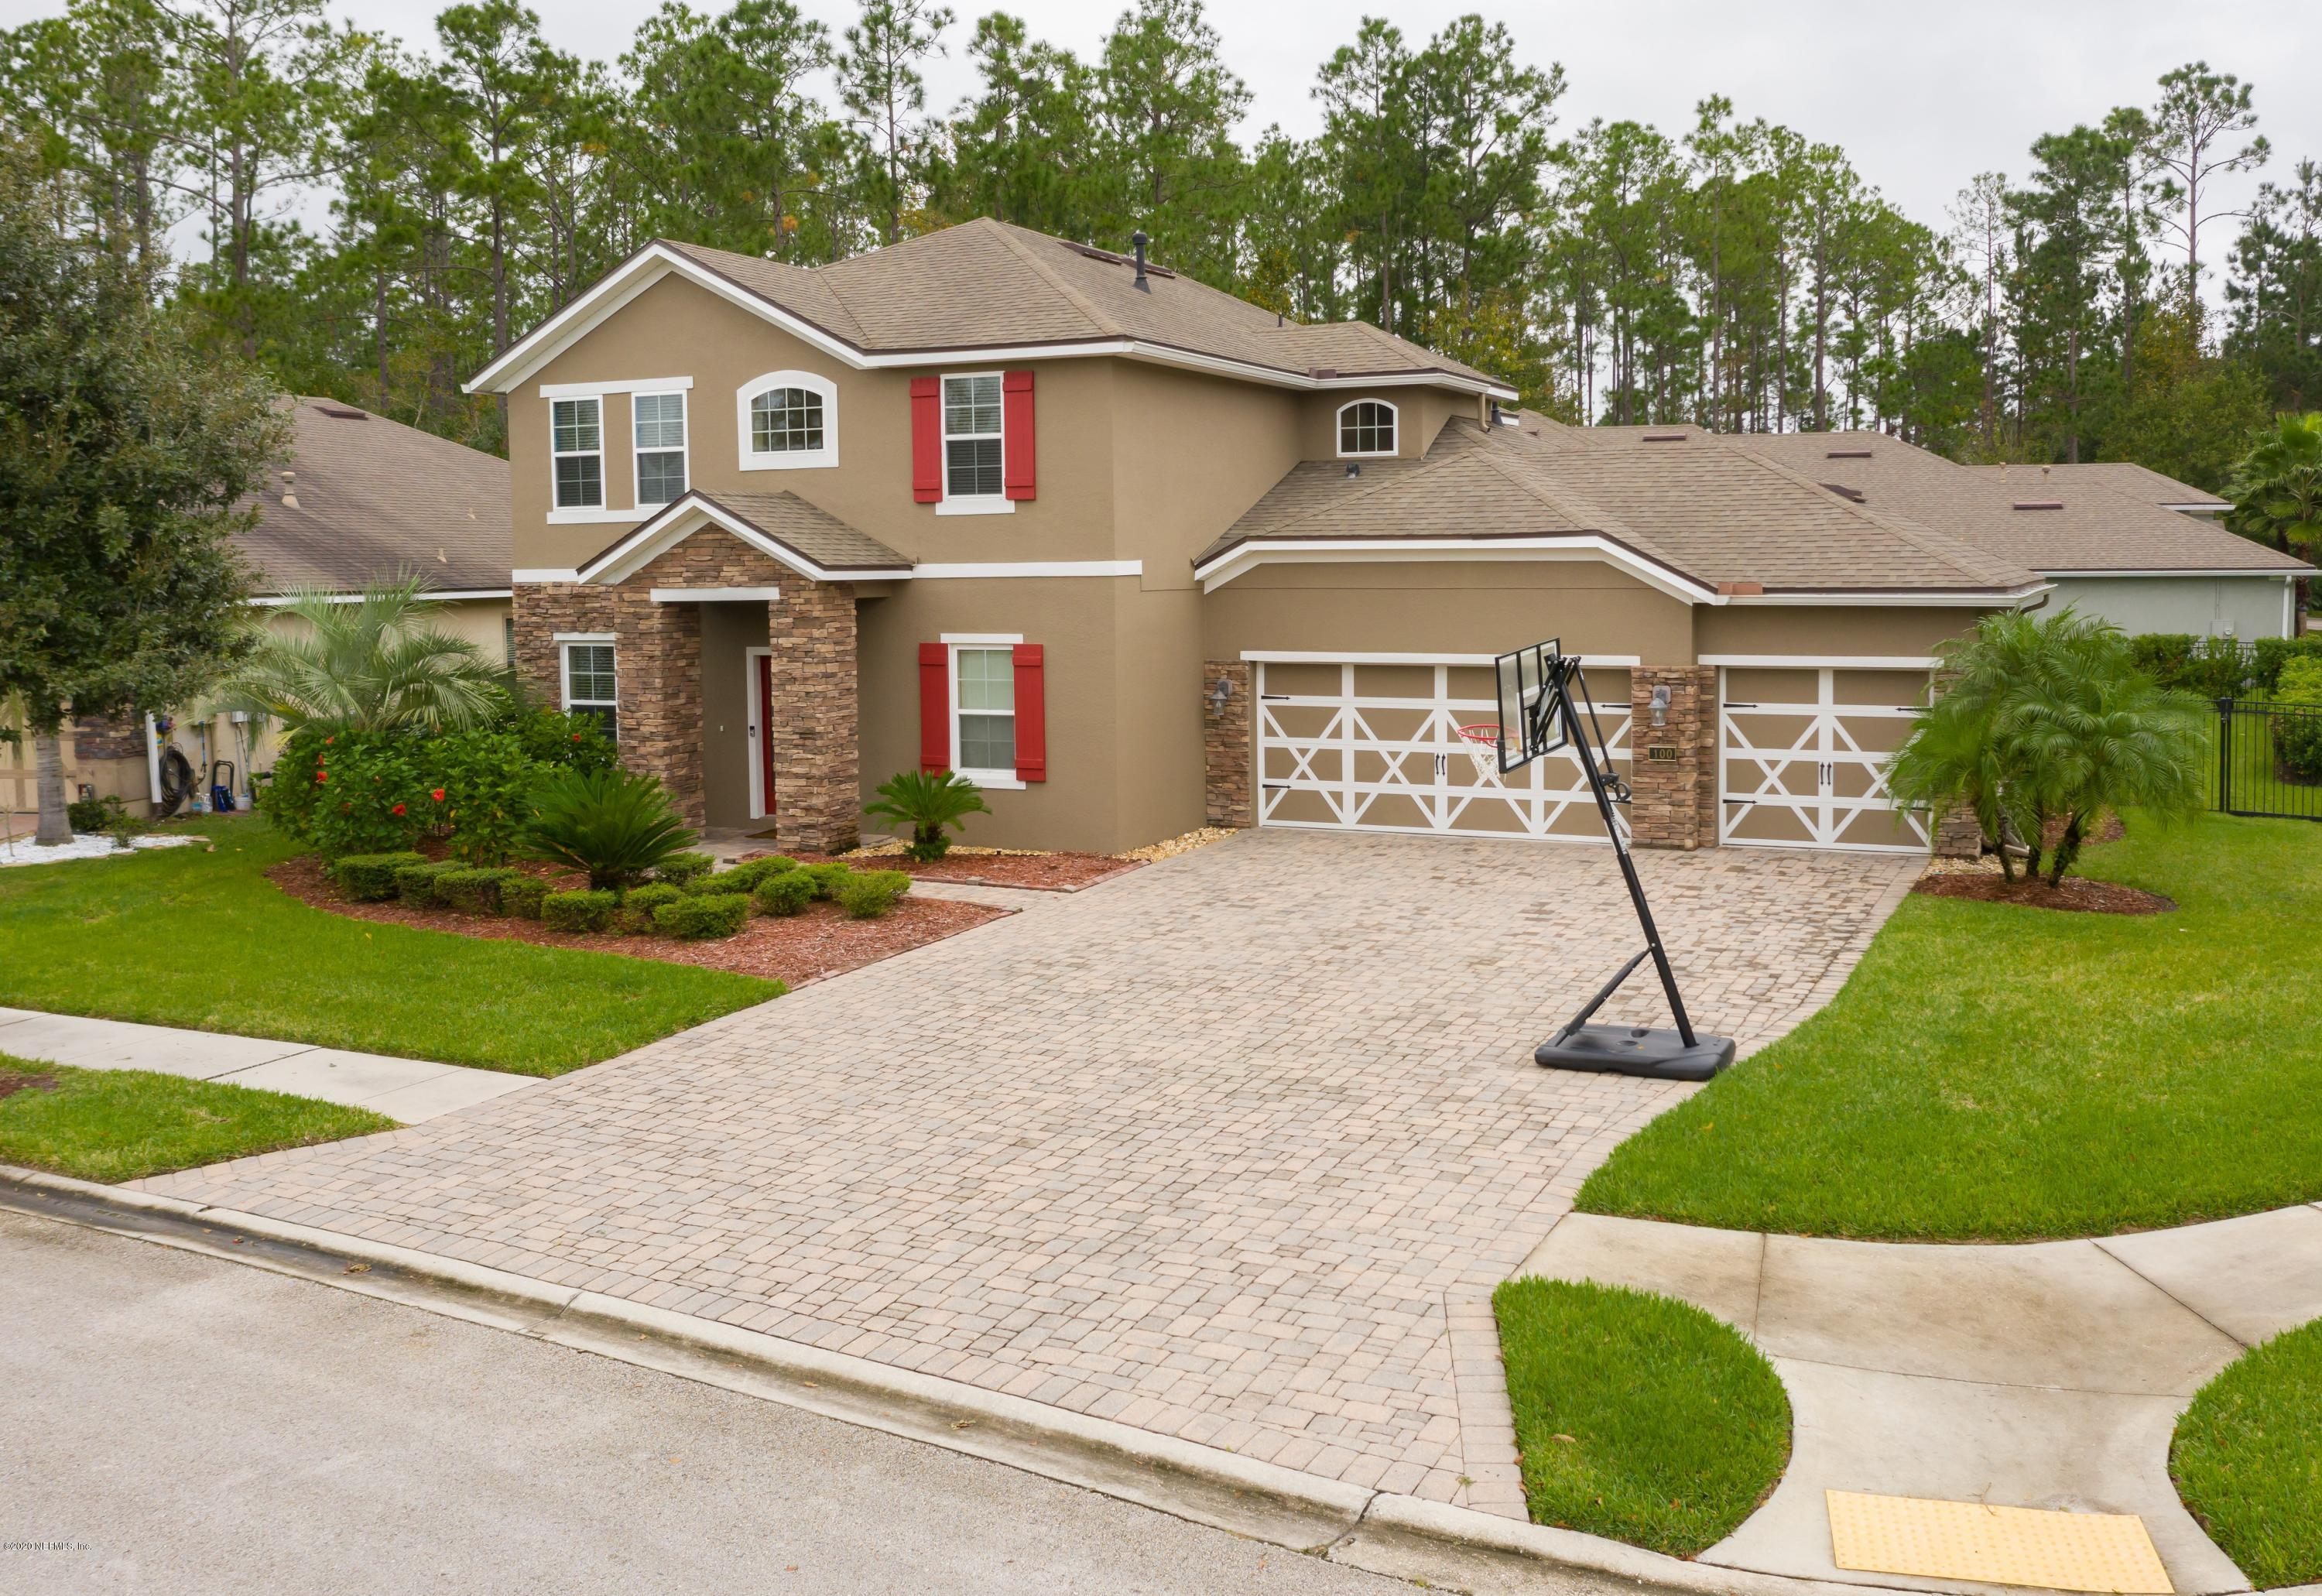 100 MOSELLE, ST JOHNS, FLORIDA 32259, 5 Bedrooms Bedrooms, ,3 BathroomsBathrooms,Residential,For sale,MOSELLE,1082811